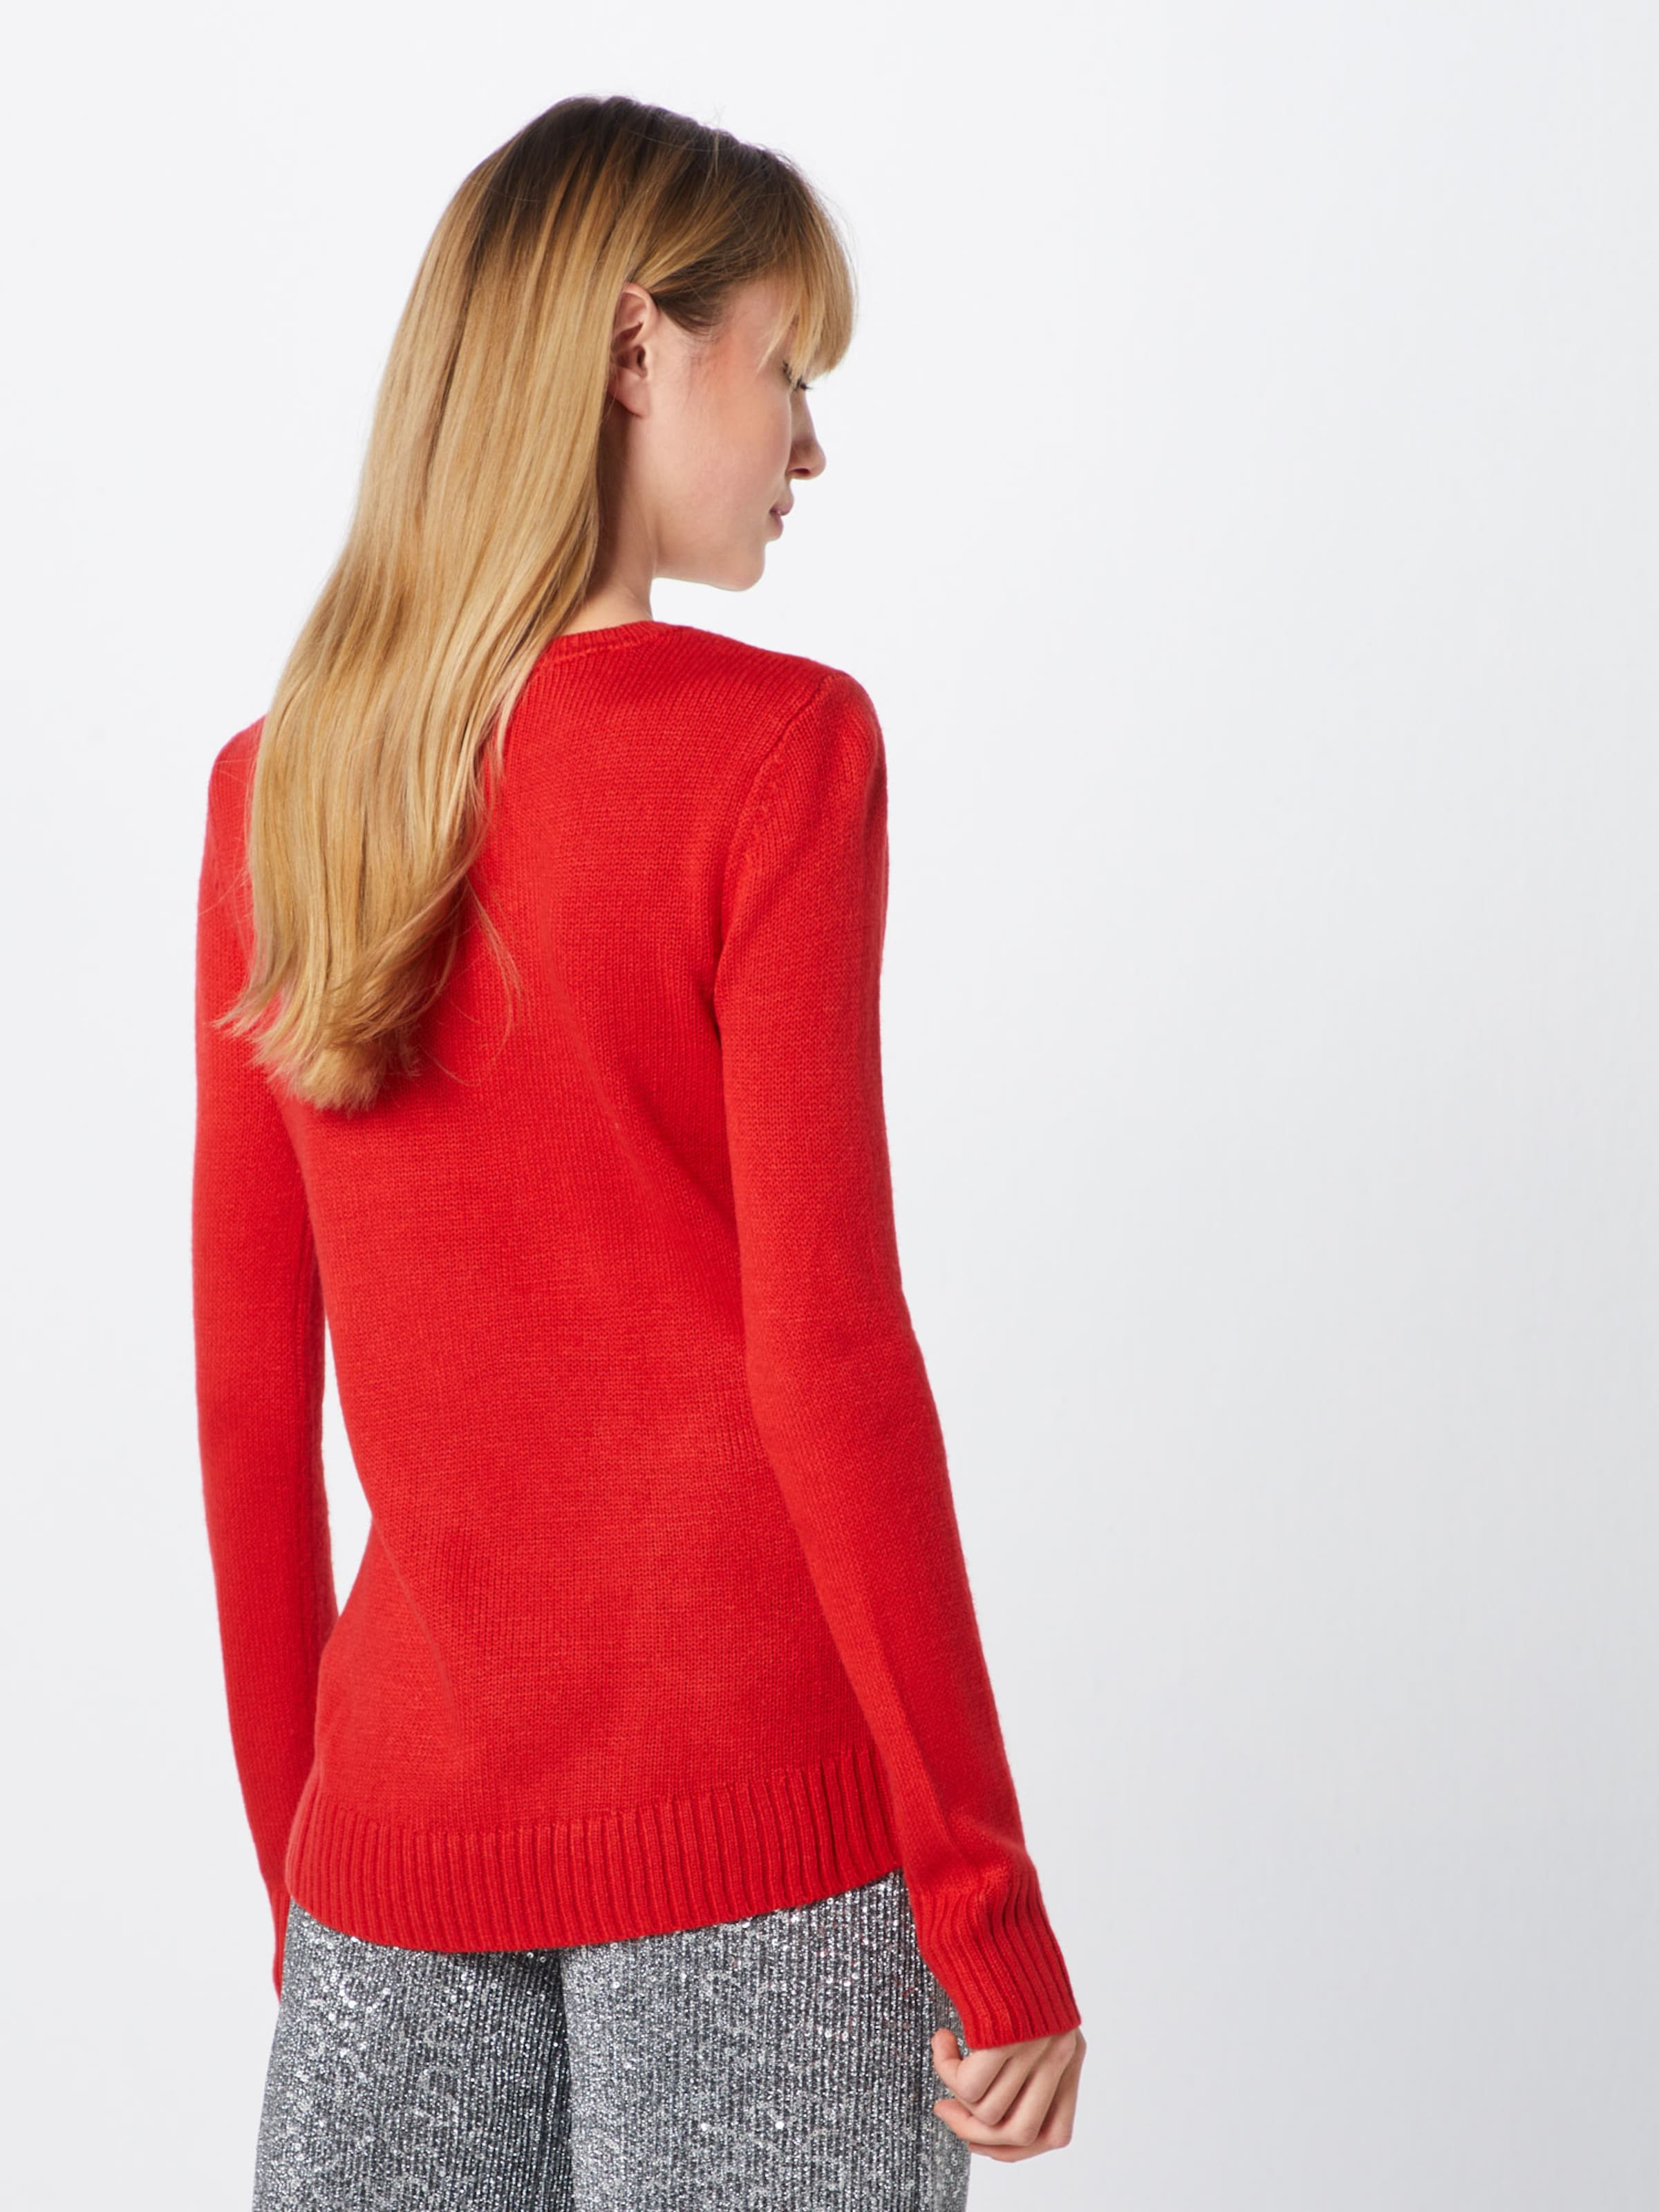 Pullover In Rot Tom 'christmas' Tailor 0OyvnwmN8